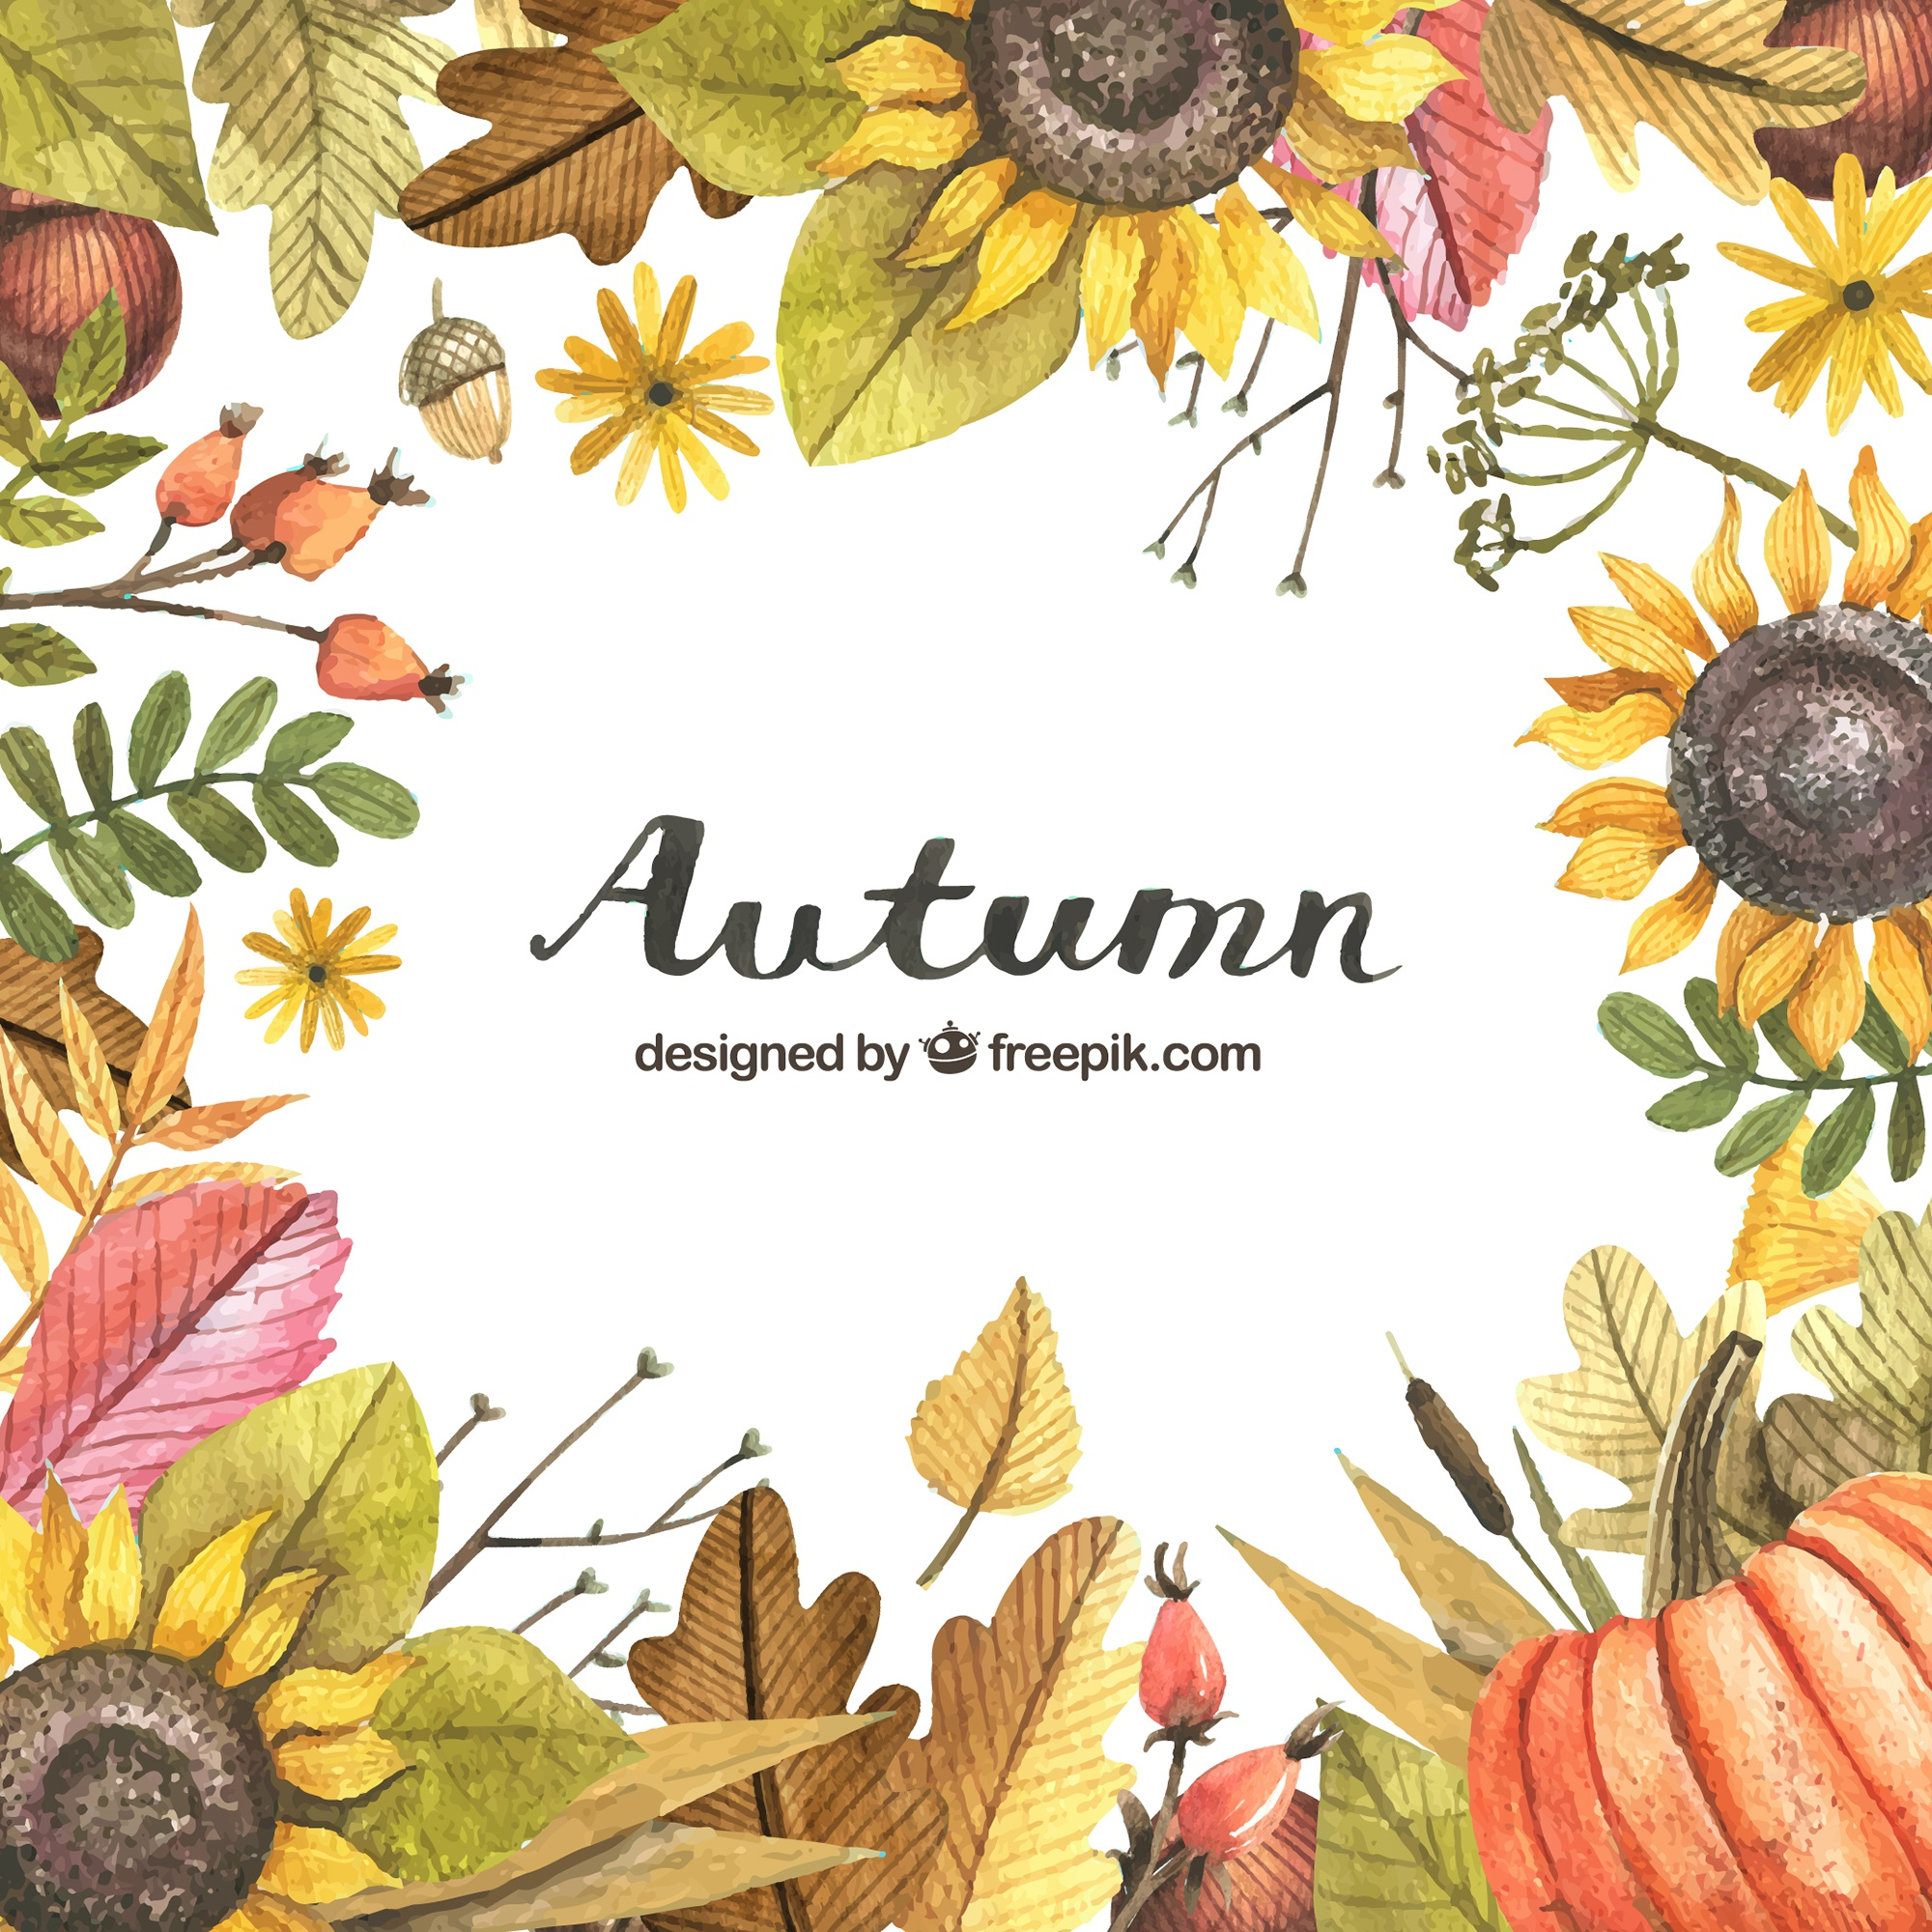 Autumn background with a painted frame with watercolors